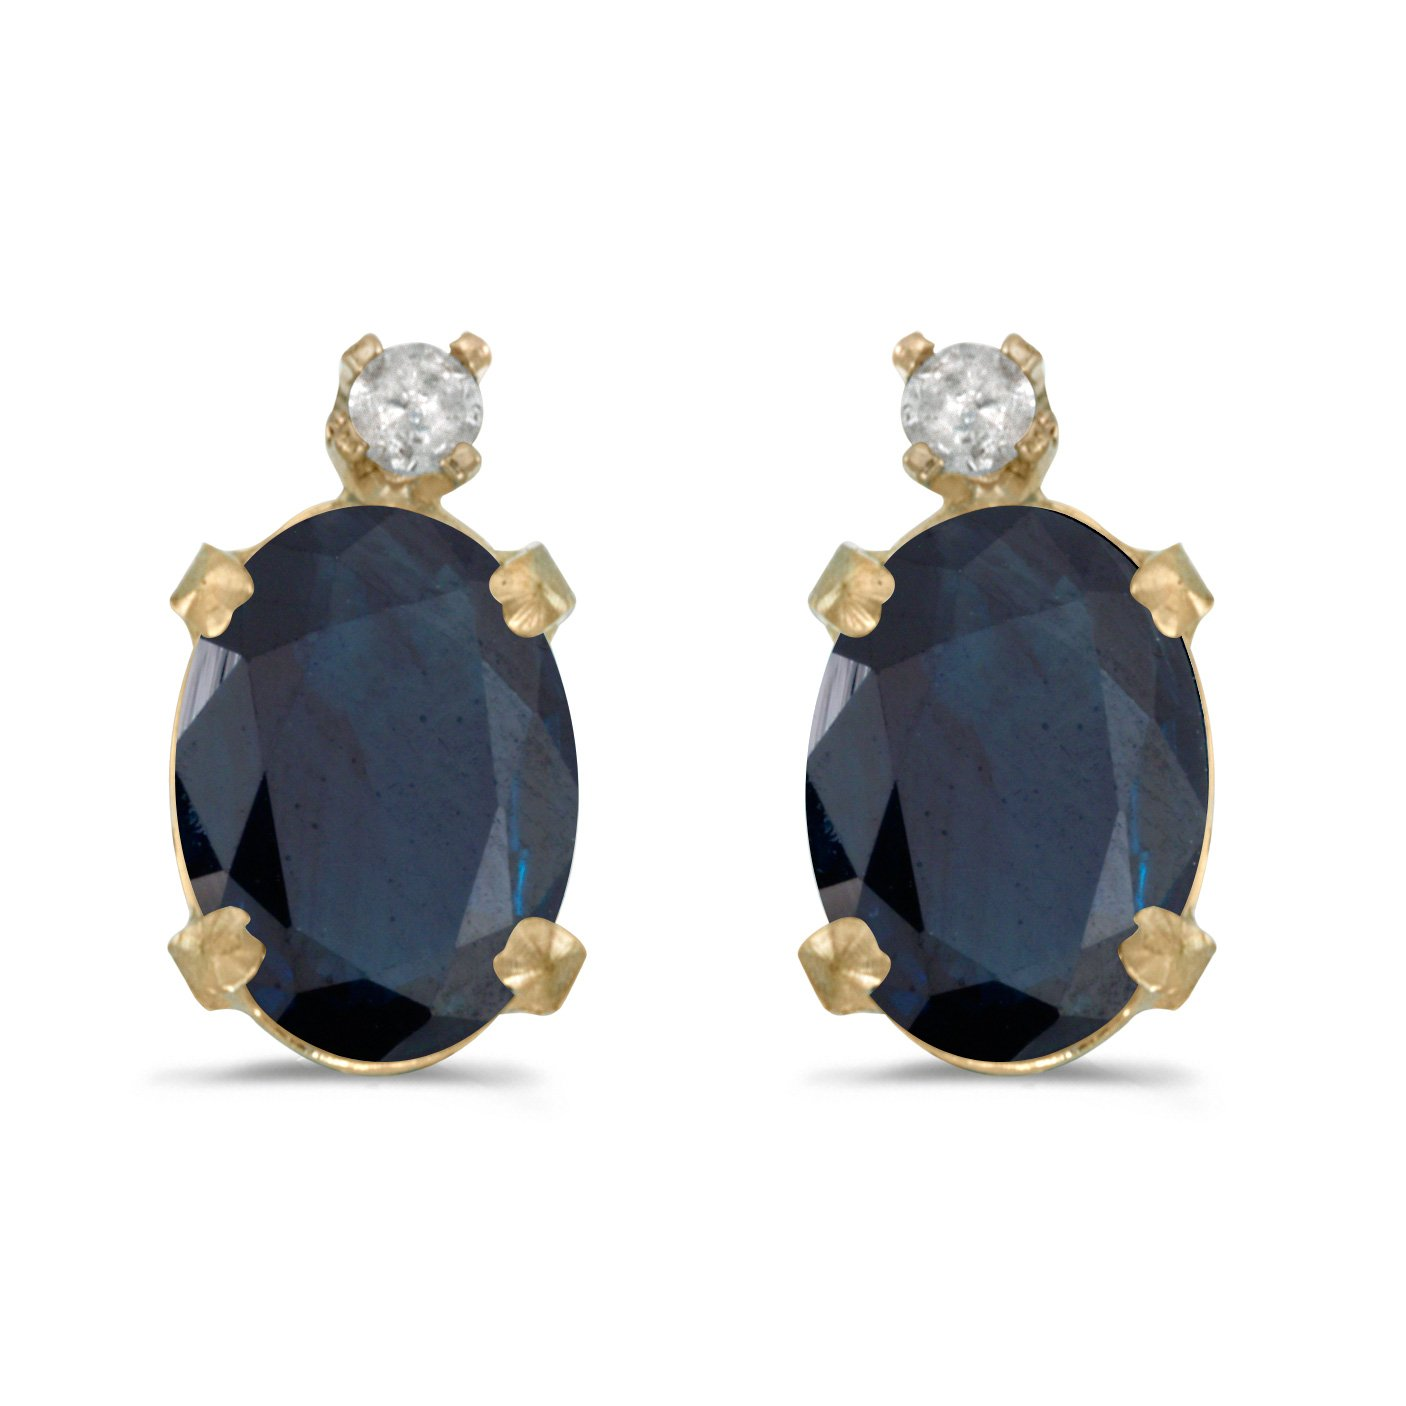 Jewels By Lux 14k Yellow Gold Studs Oval Gemstone and Diamond Earrings CM-061118